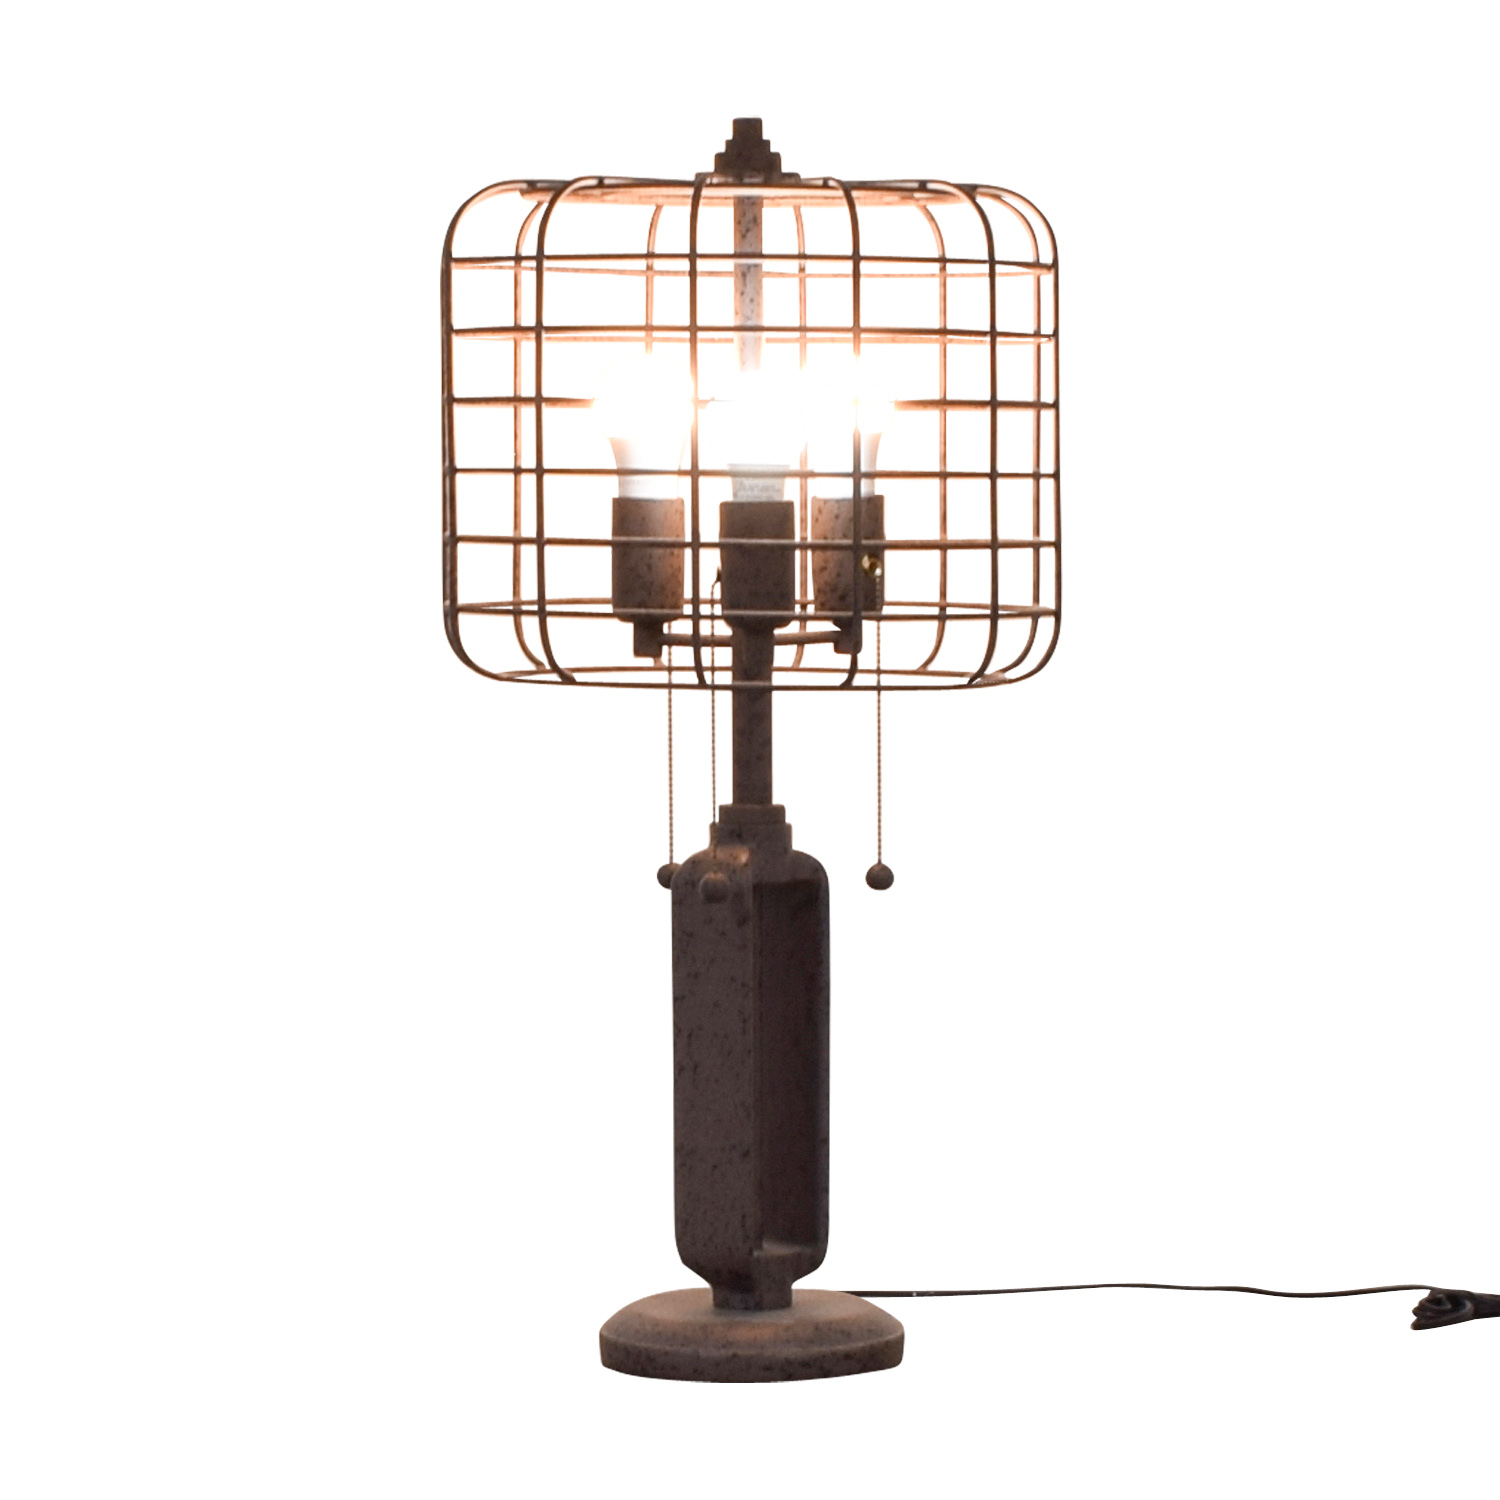 Franklin Iron Works Franklin Iron Works Industrial Cage Edison Bulb Rust Metal Table Lamp dimensions